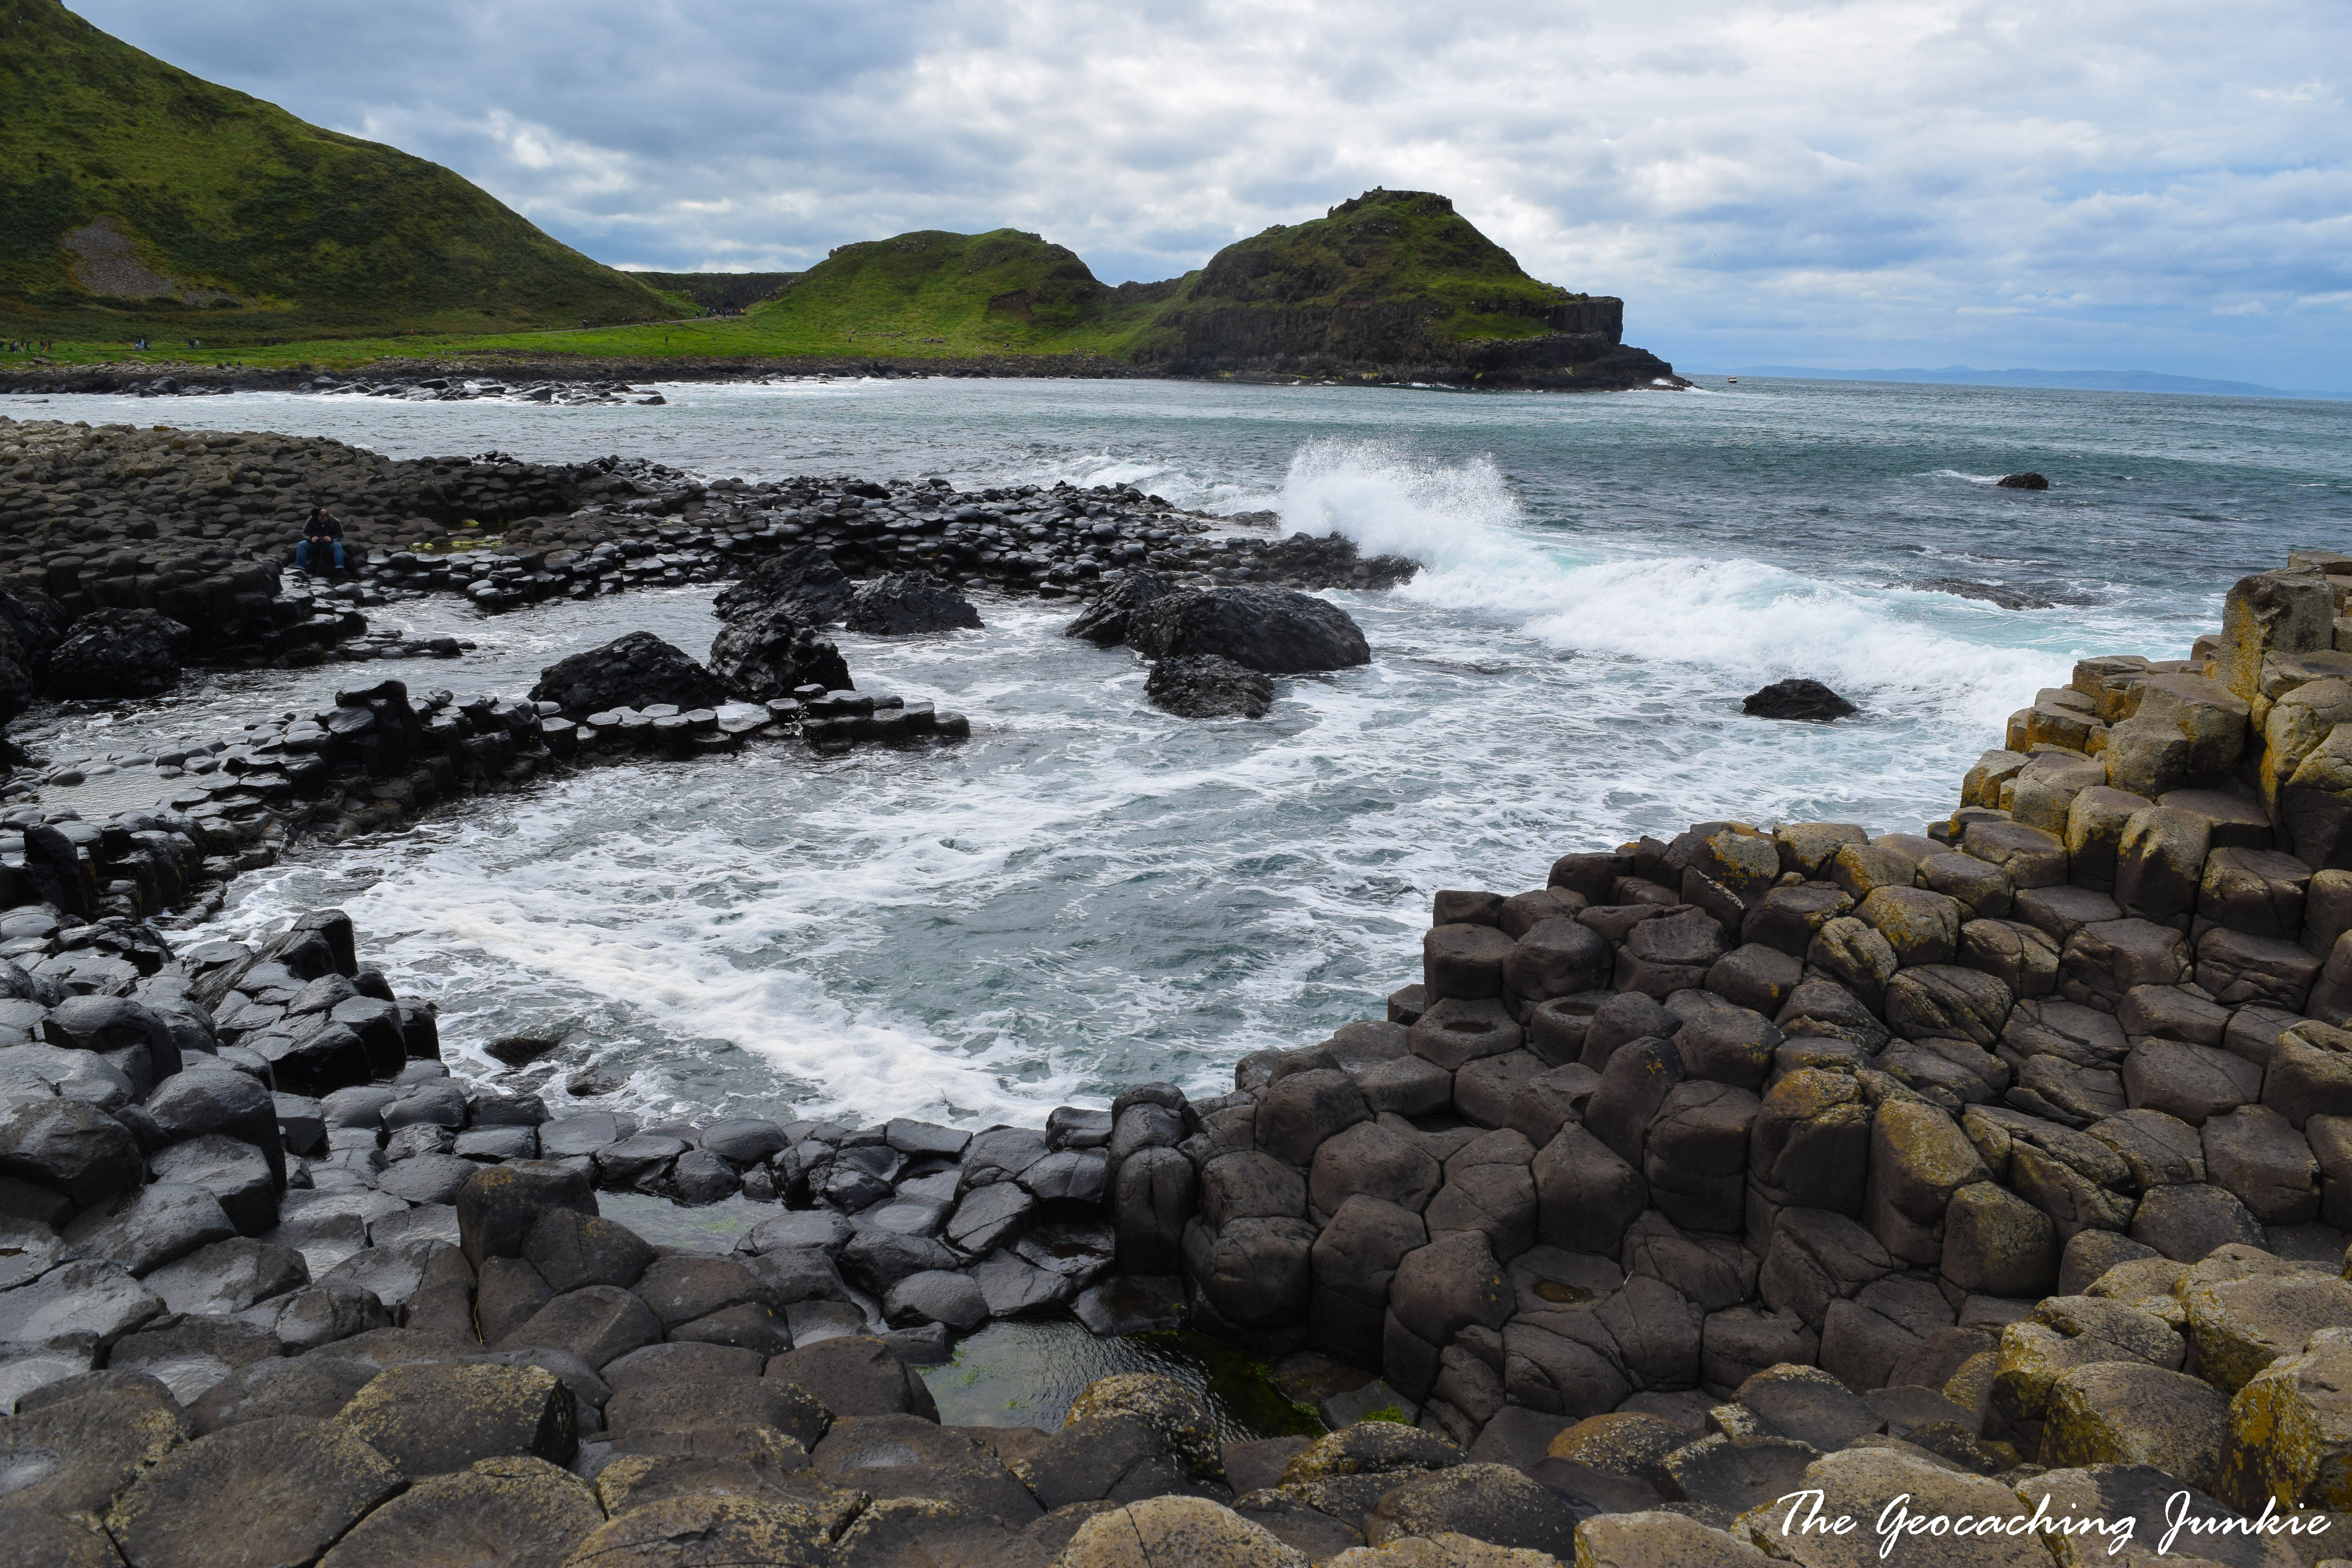 The Geocaching Junkie: 15 Reasons to go geocaching in Ireland